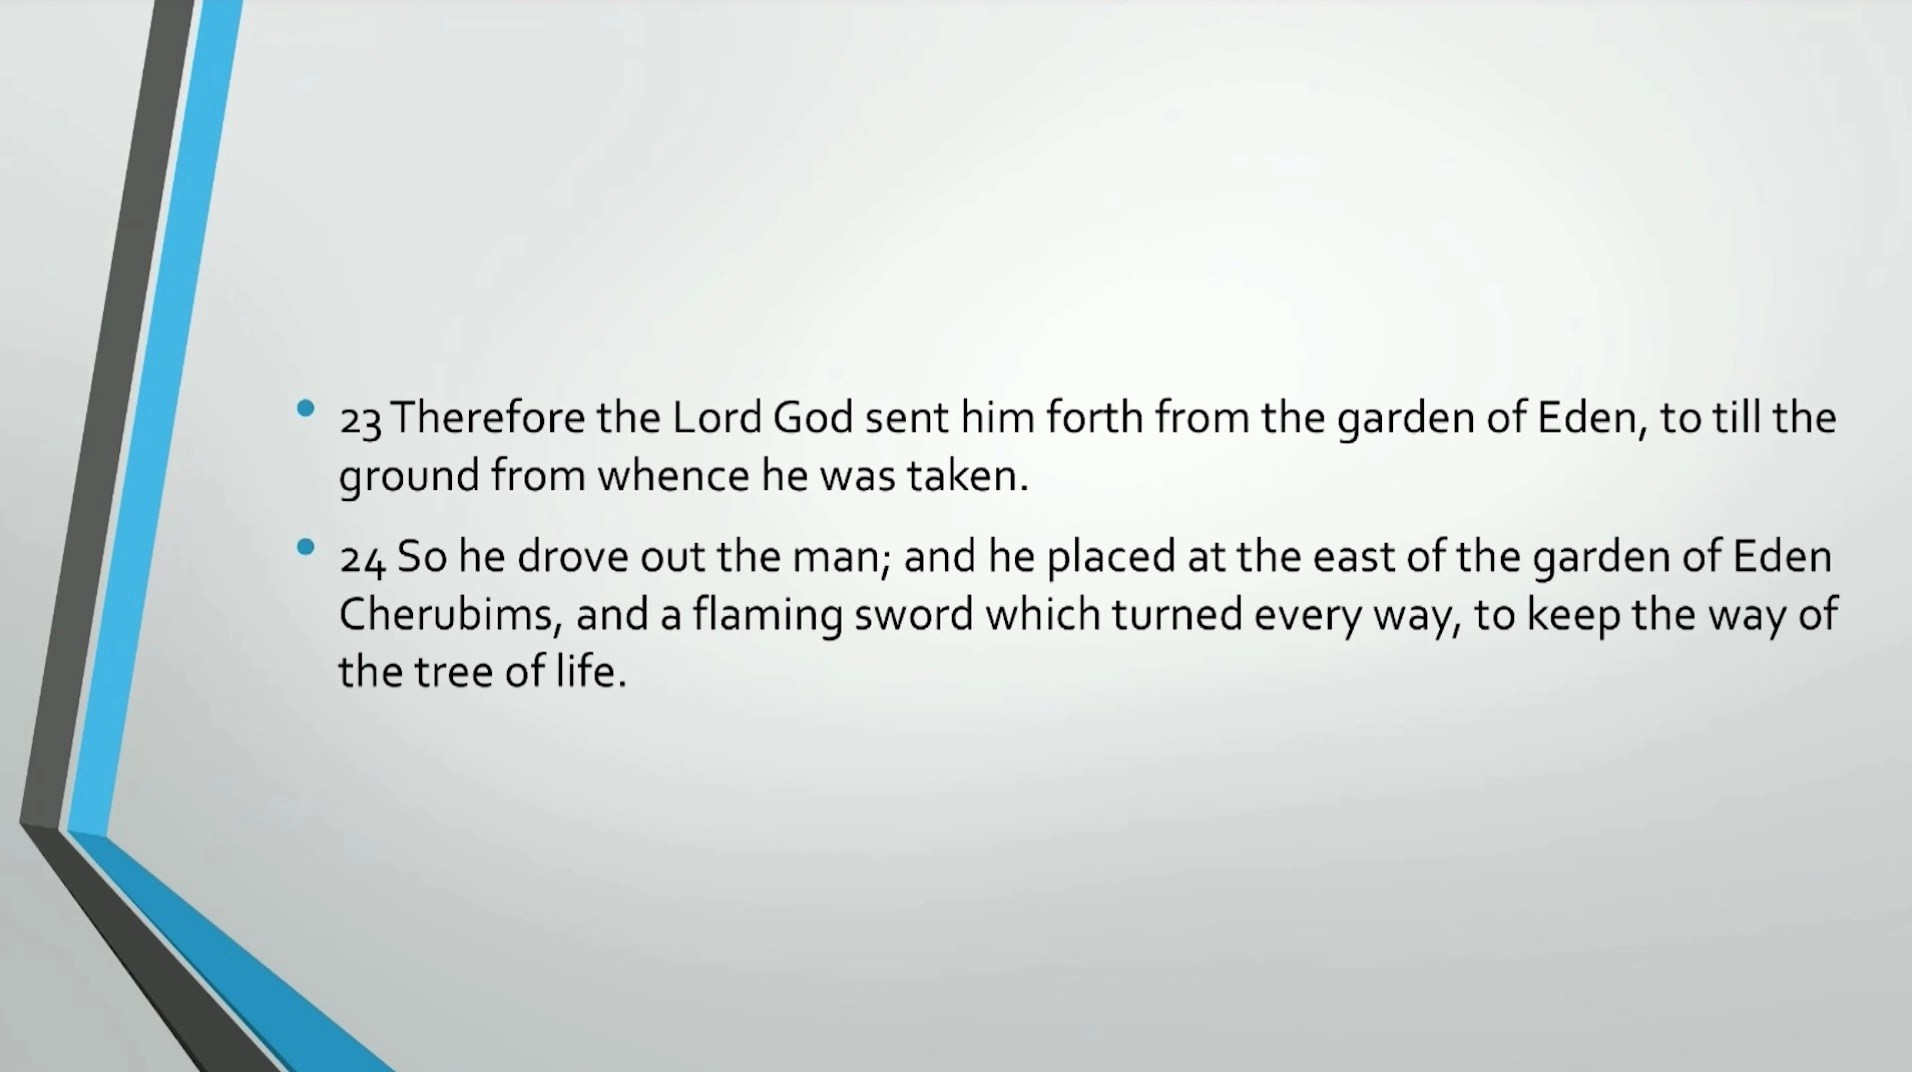 Bible Series Iv Adam Eve Self Consciousness Evil Death Circuit Design Suite Screenshot 23 Therefore The Lord God Sent Him Forth From Garden Of Eden To Till Ground Whence He Was Taken So Drove Out Man And Placed At